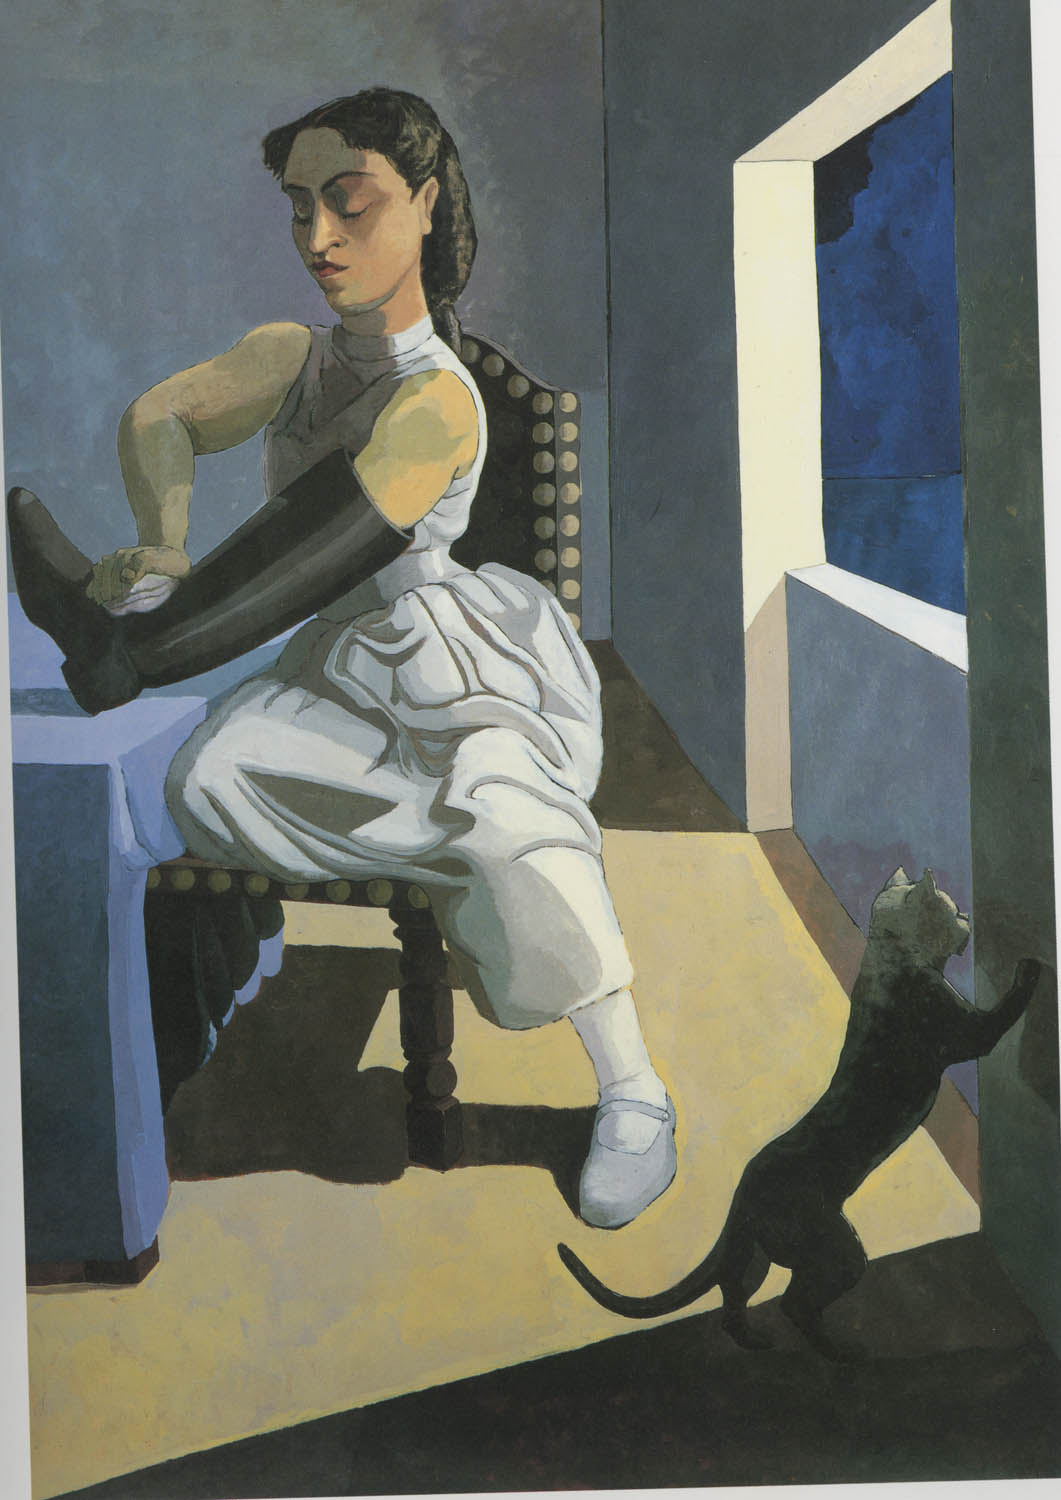 Paula Rego, The Policeman's Daughter